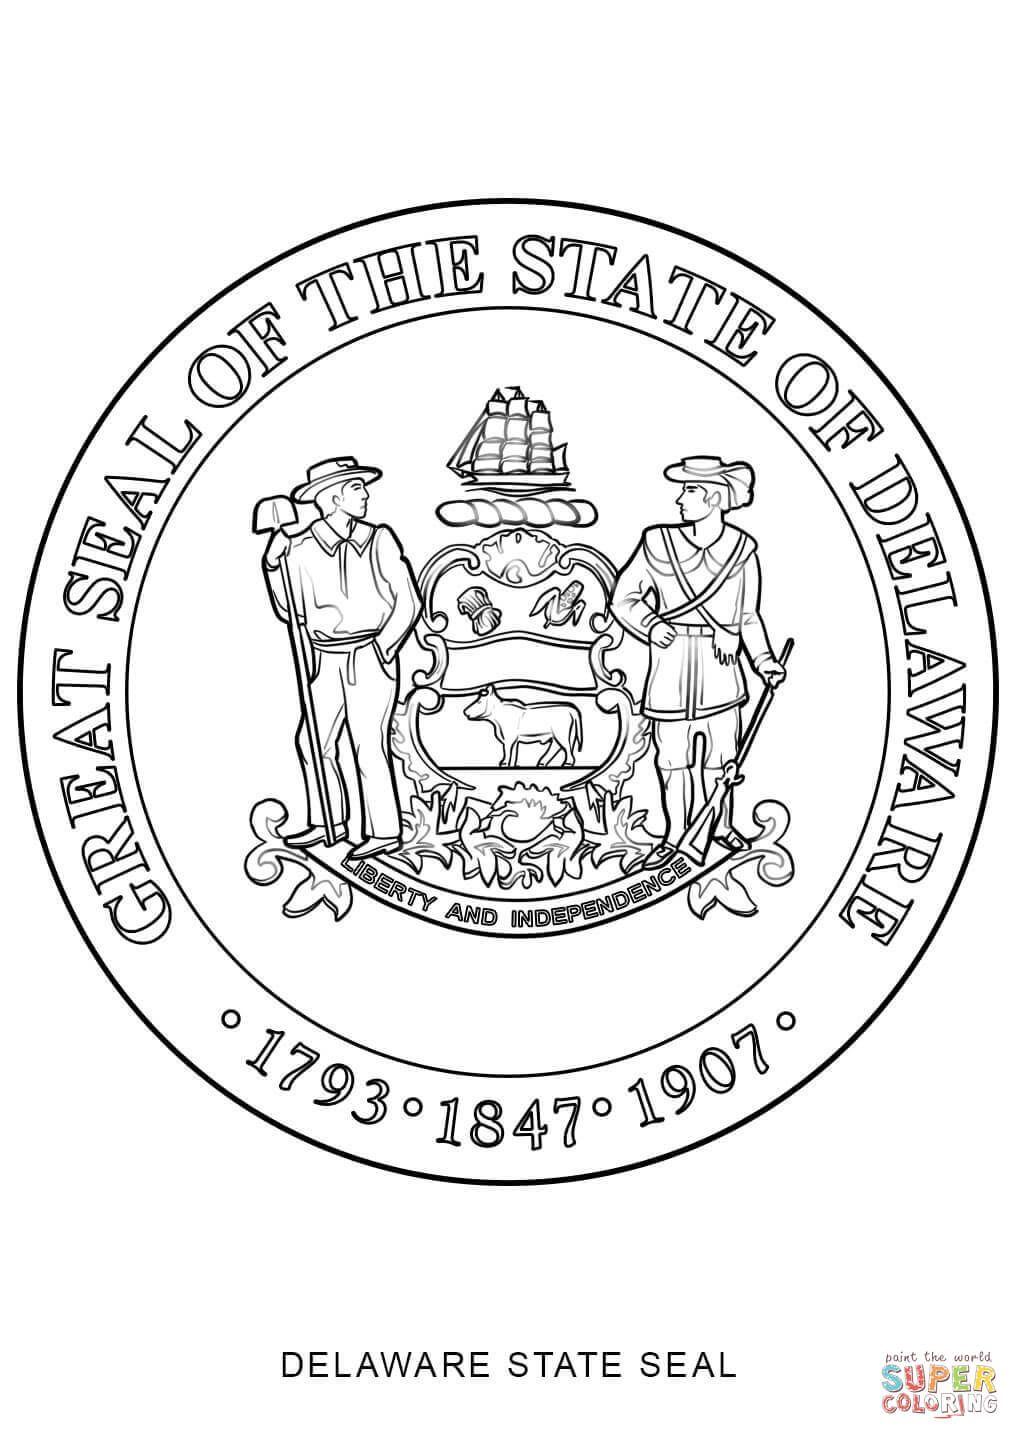 Click The Delaware State Seal Coloring Pages To View Printable Version Or Color It Online